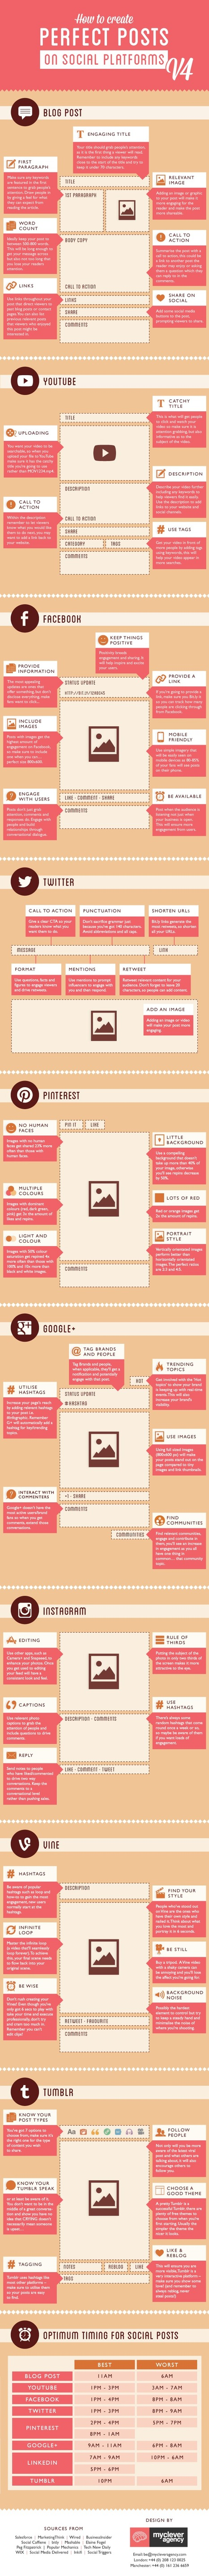 The Art of Creating Perfect Social Media Posts - infographic | My Blog 2014 | Scoop.it